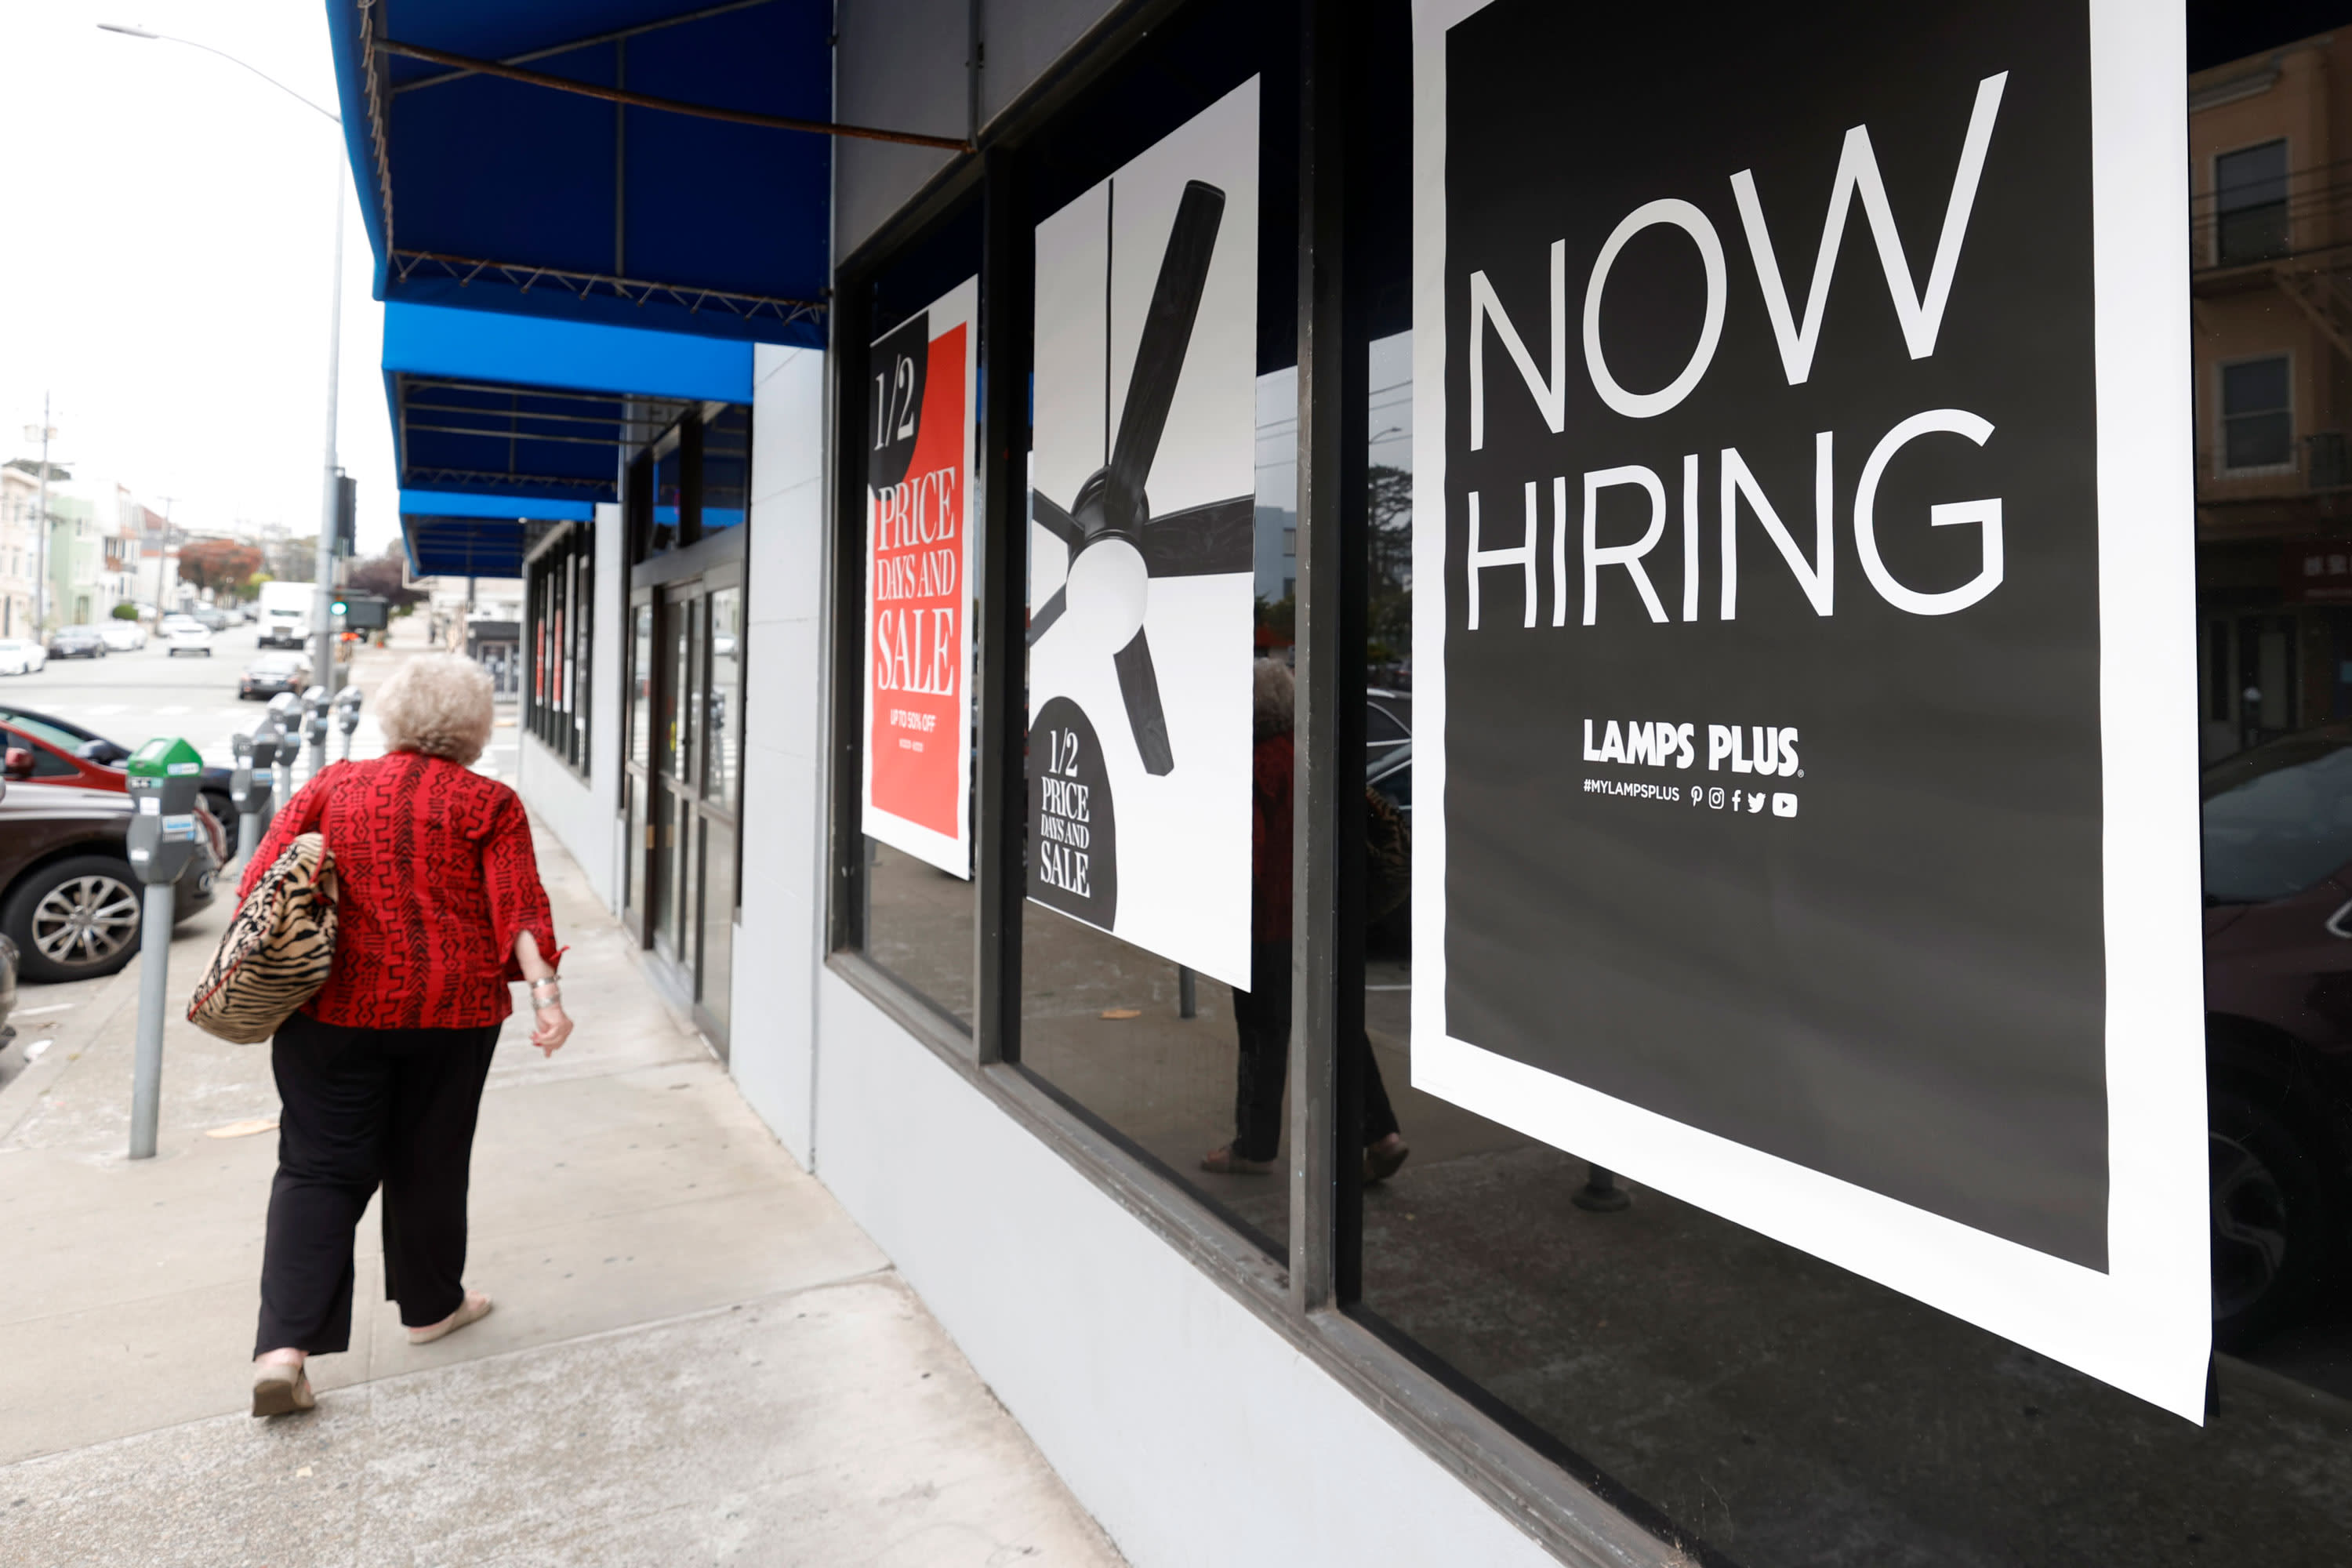 Jobless claims post sharp decline to 326,000, better than expectations